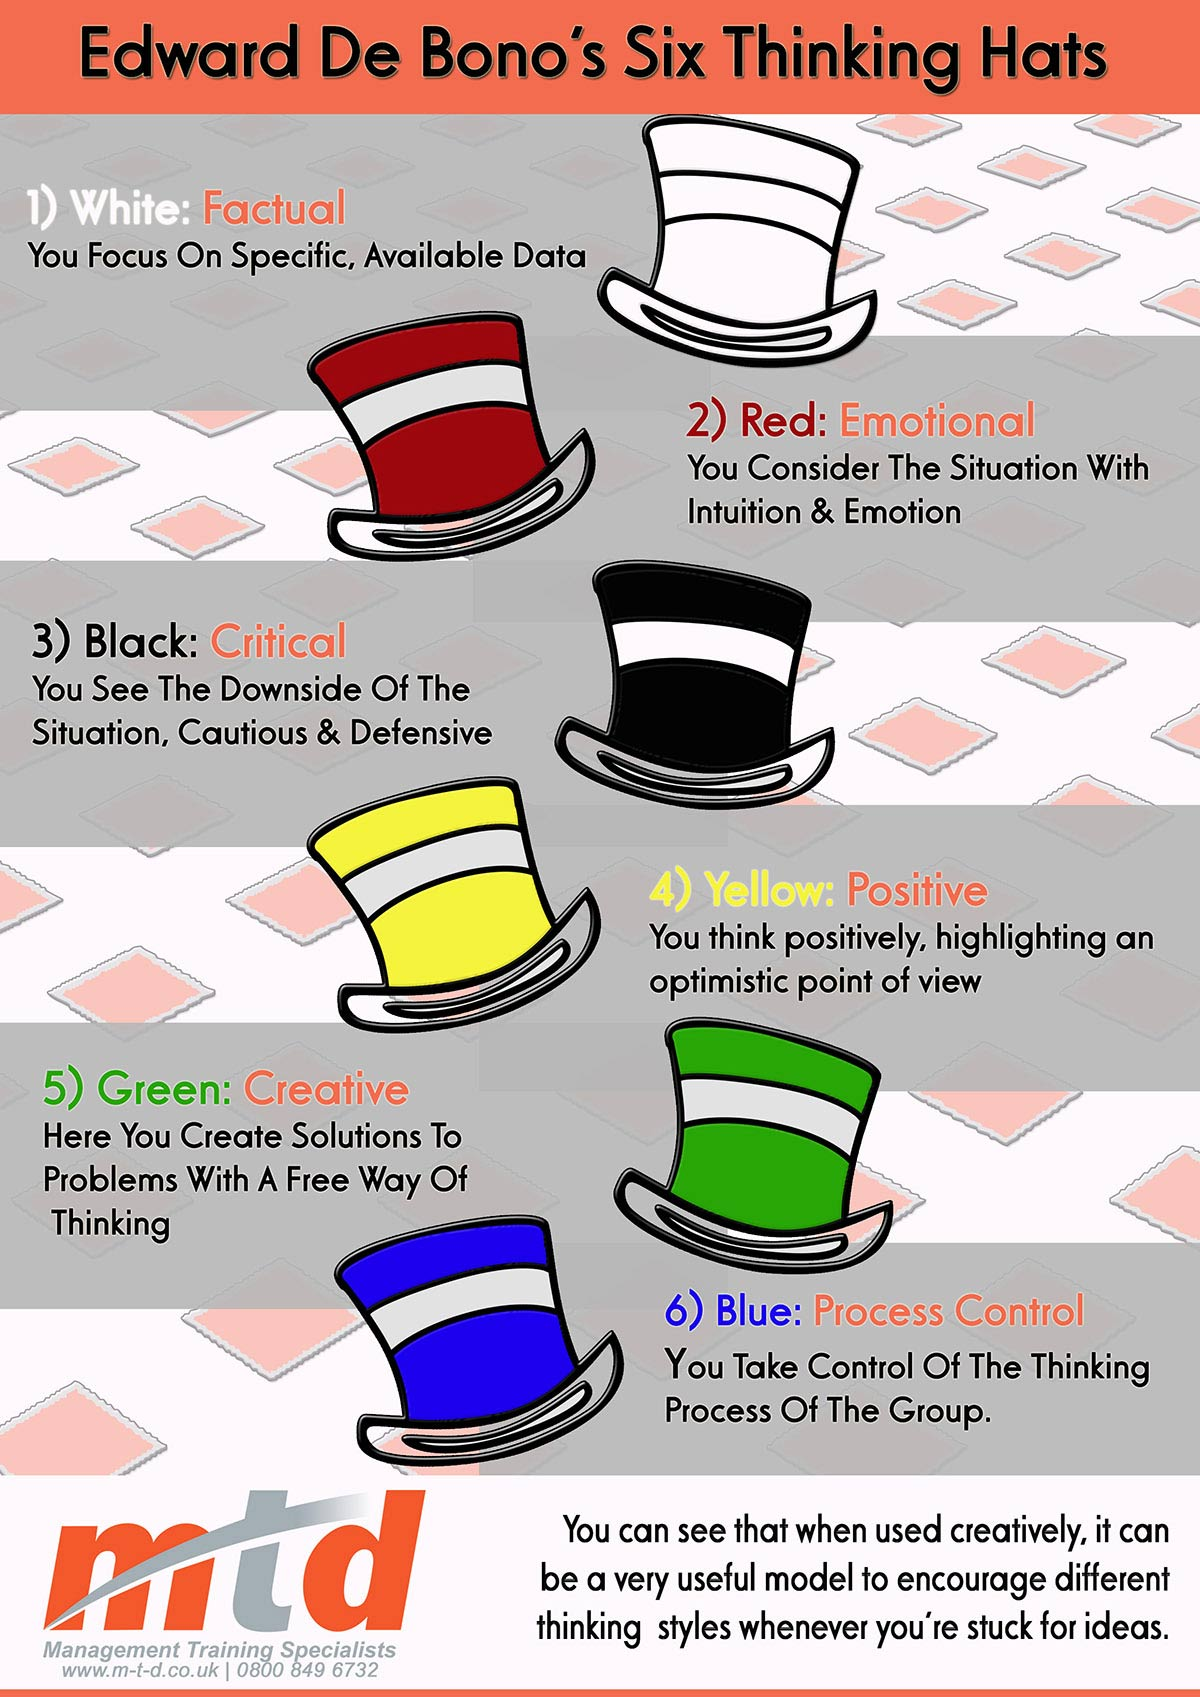 Mtd Training Six Thinking Hats Click Here To Download The Full Size Version Of The Infographic